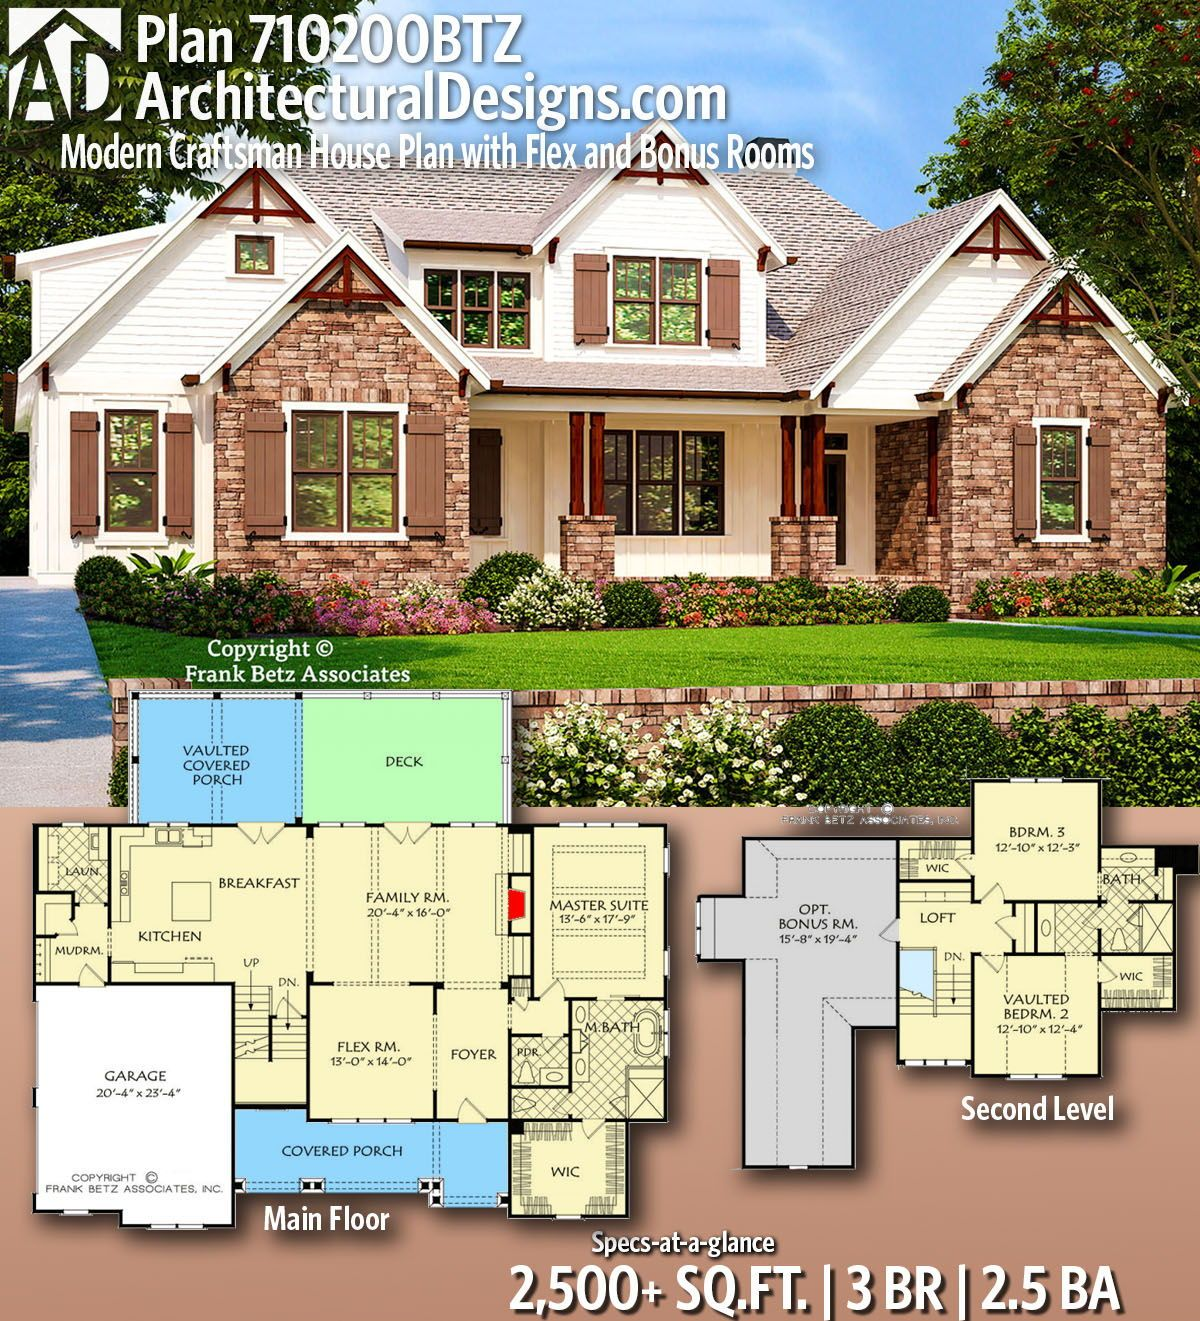 Plan 710200btz Modern Craftsman House Plan With Flex And Bonus Rooms Craftsman House Plans Craftsman House House Plans